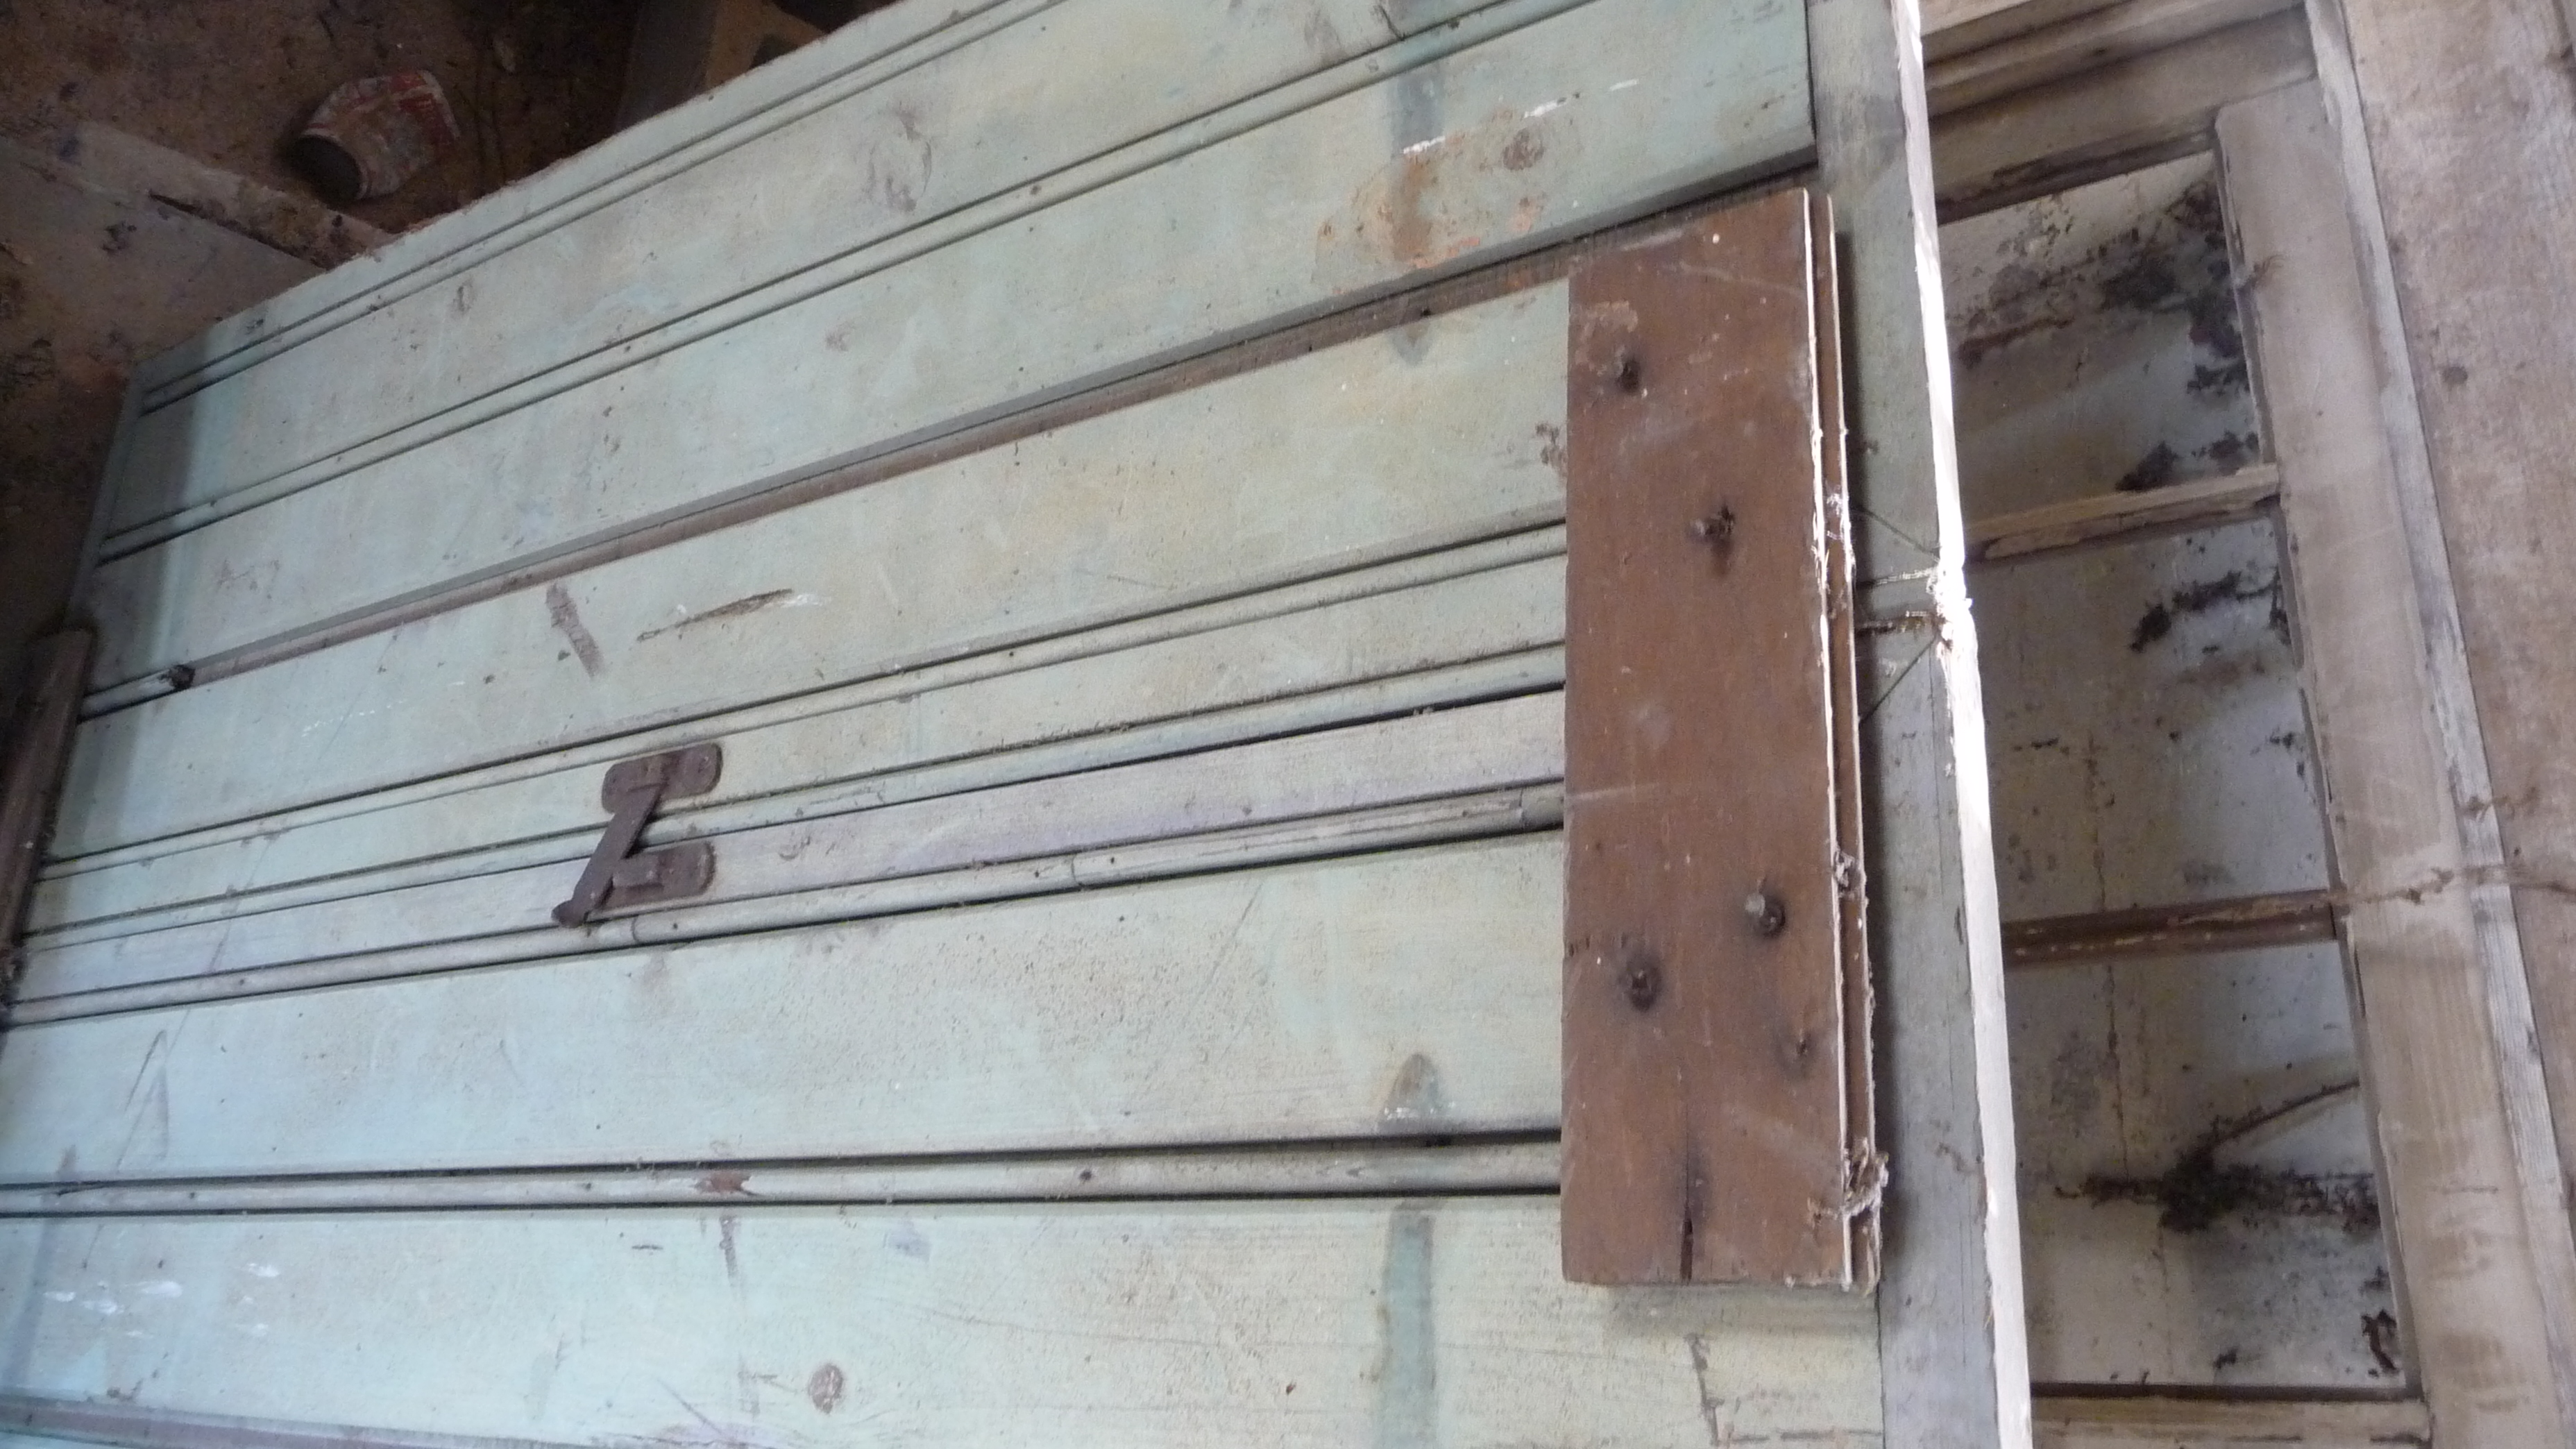 The bead board shutter that stood behind Prissy on the side porch in GWTW